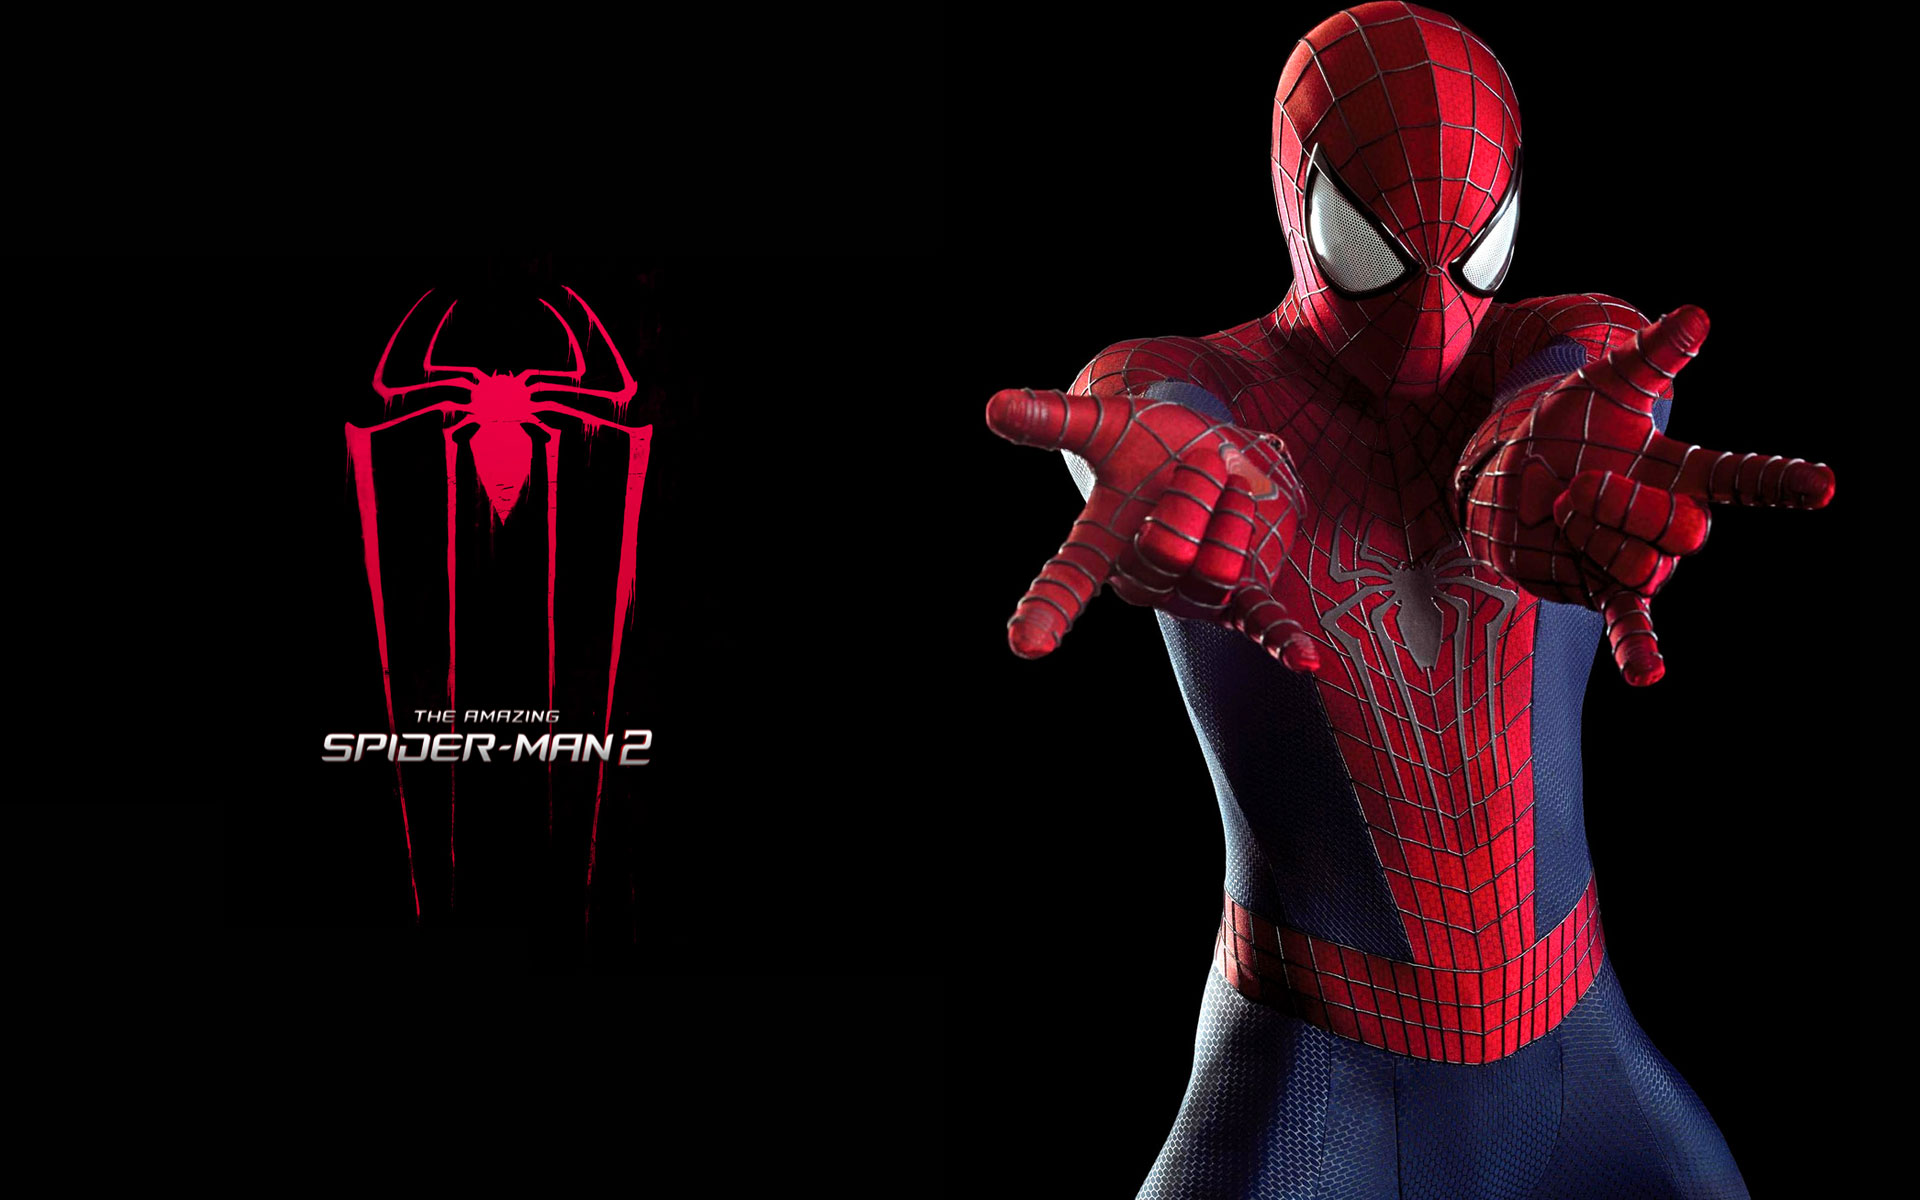 31 spiderman hd wallpaper - photo #21